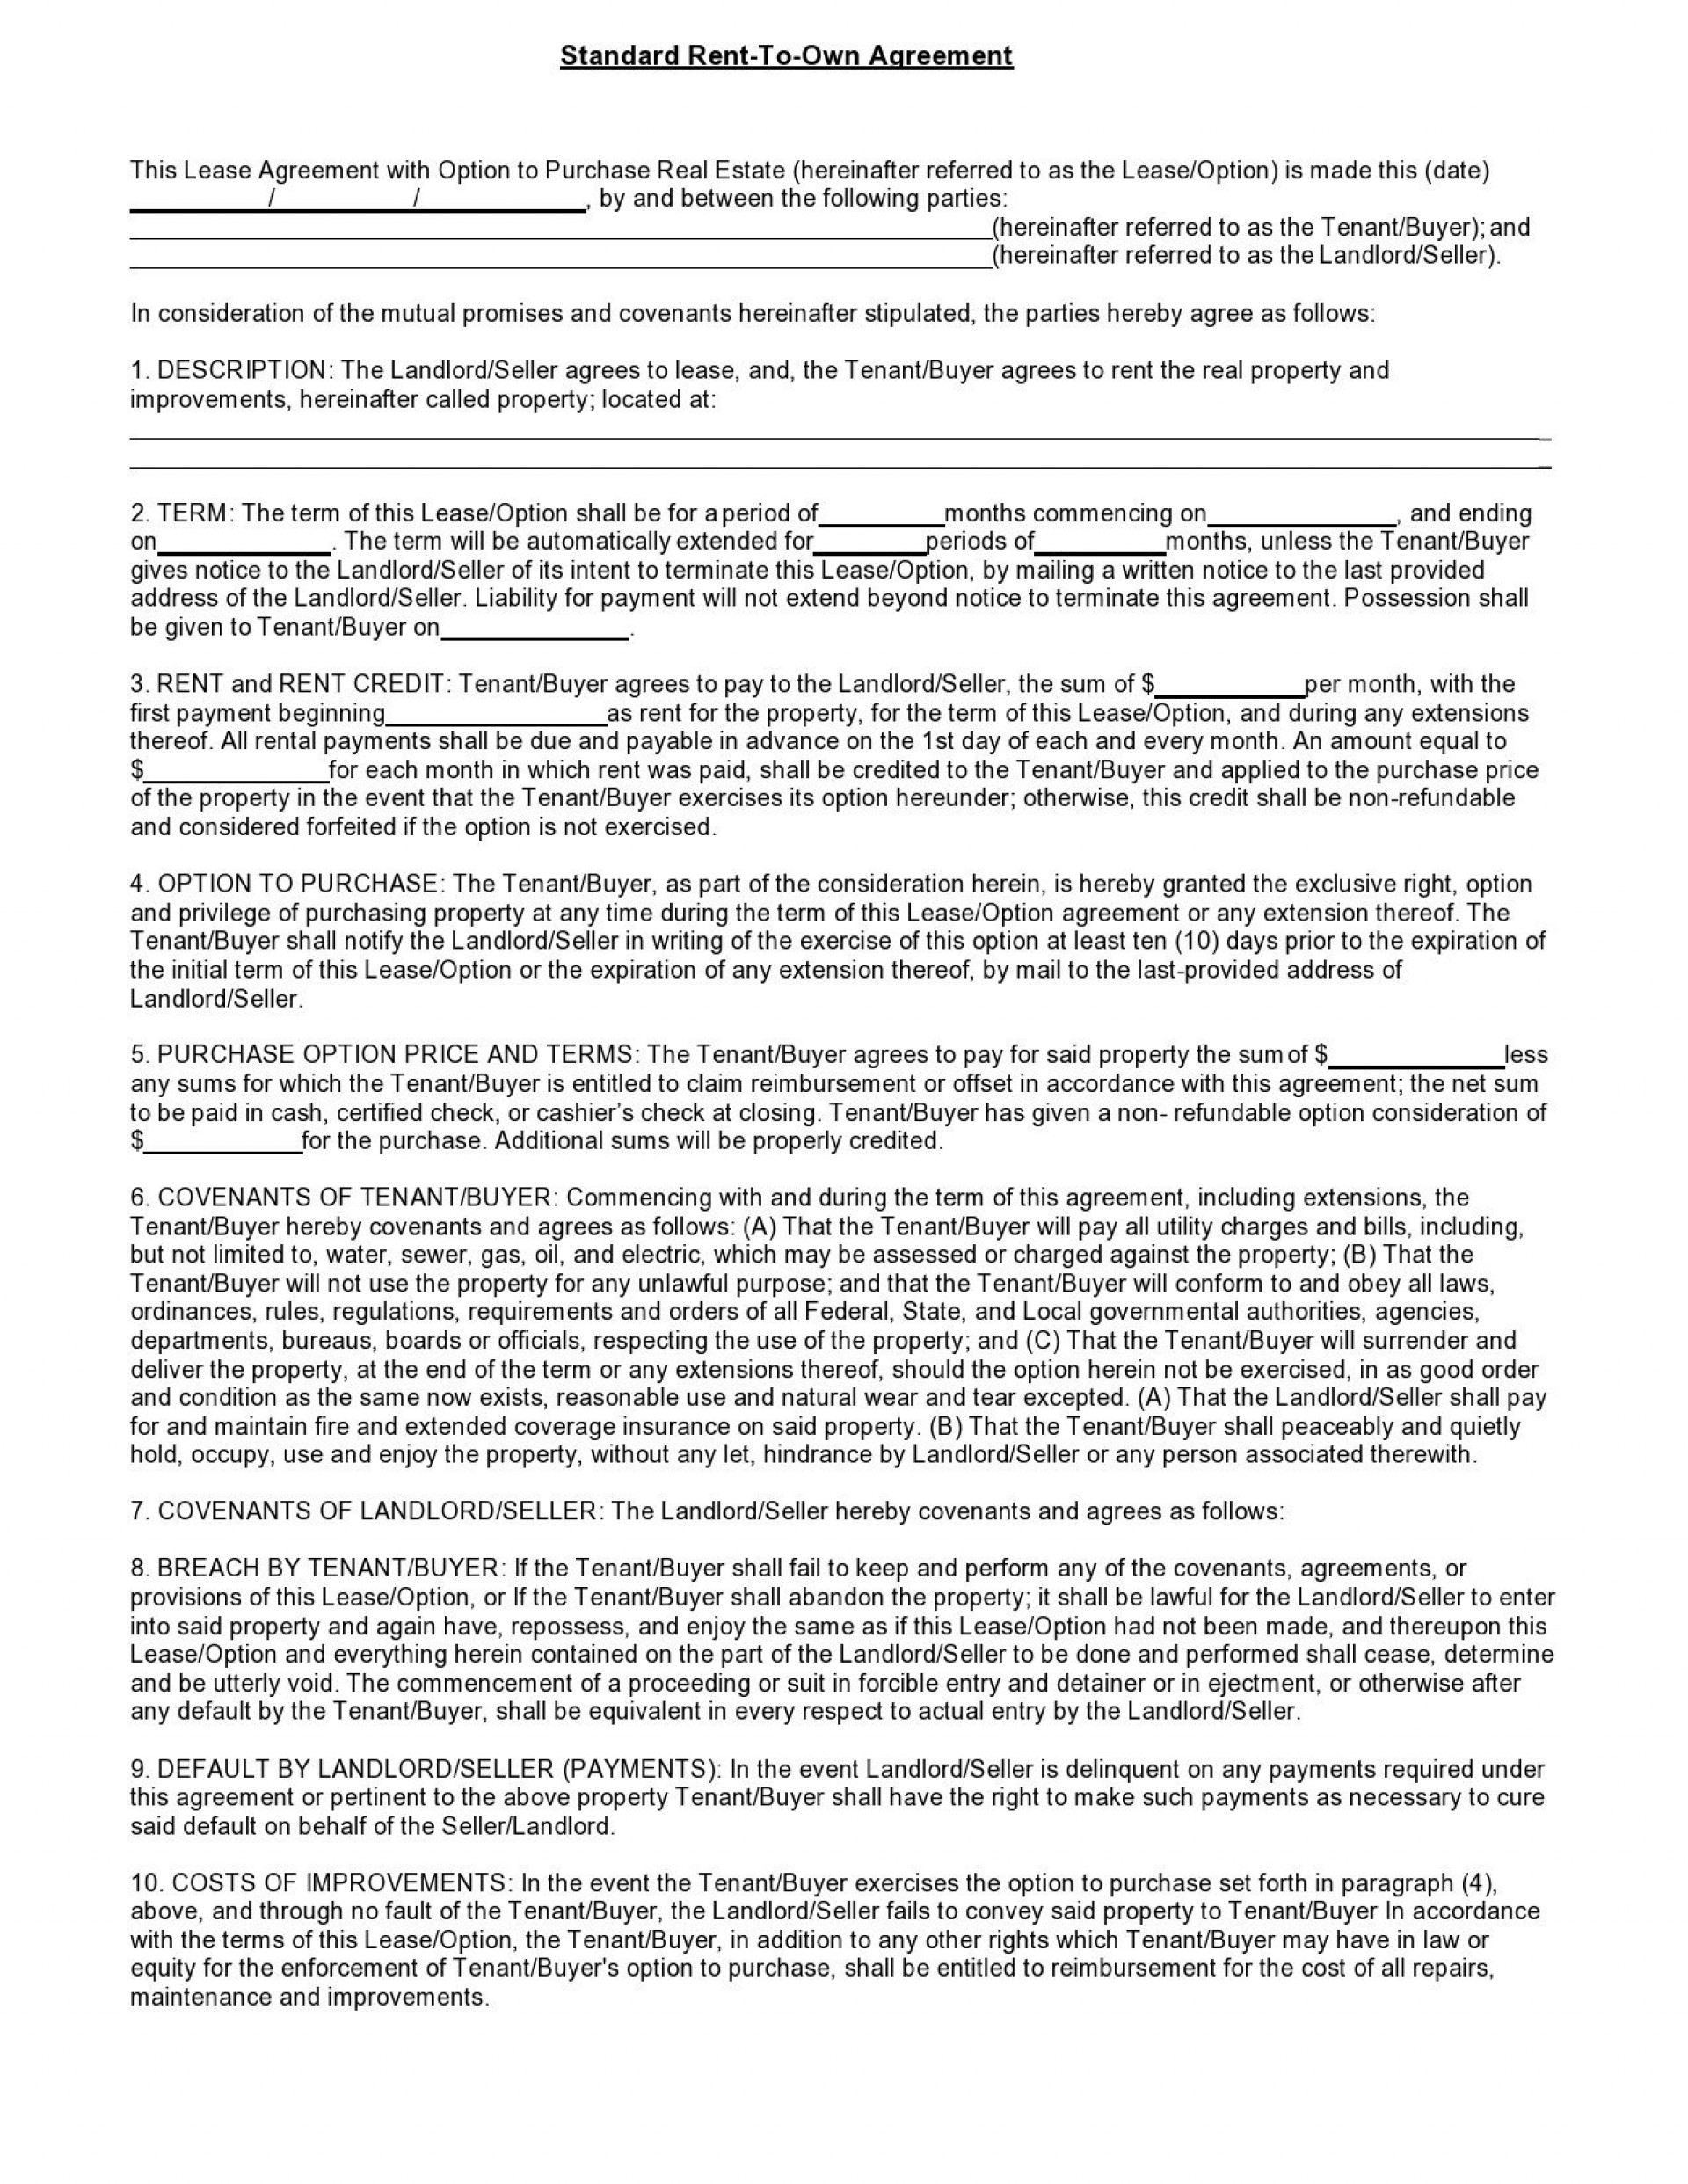 002 Magnificent Rent To Own Contract Form Free Sample  For House Pdf1920